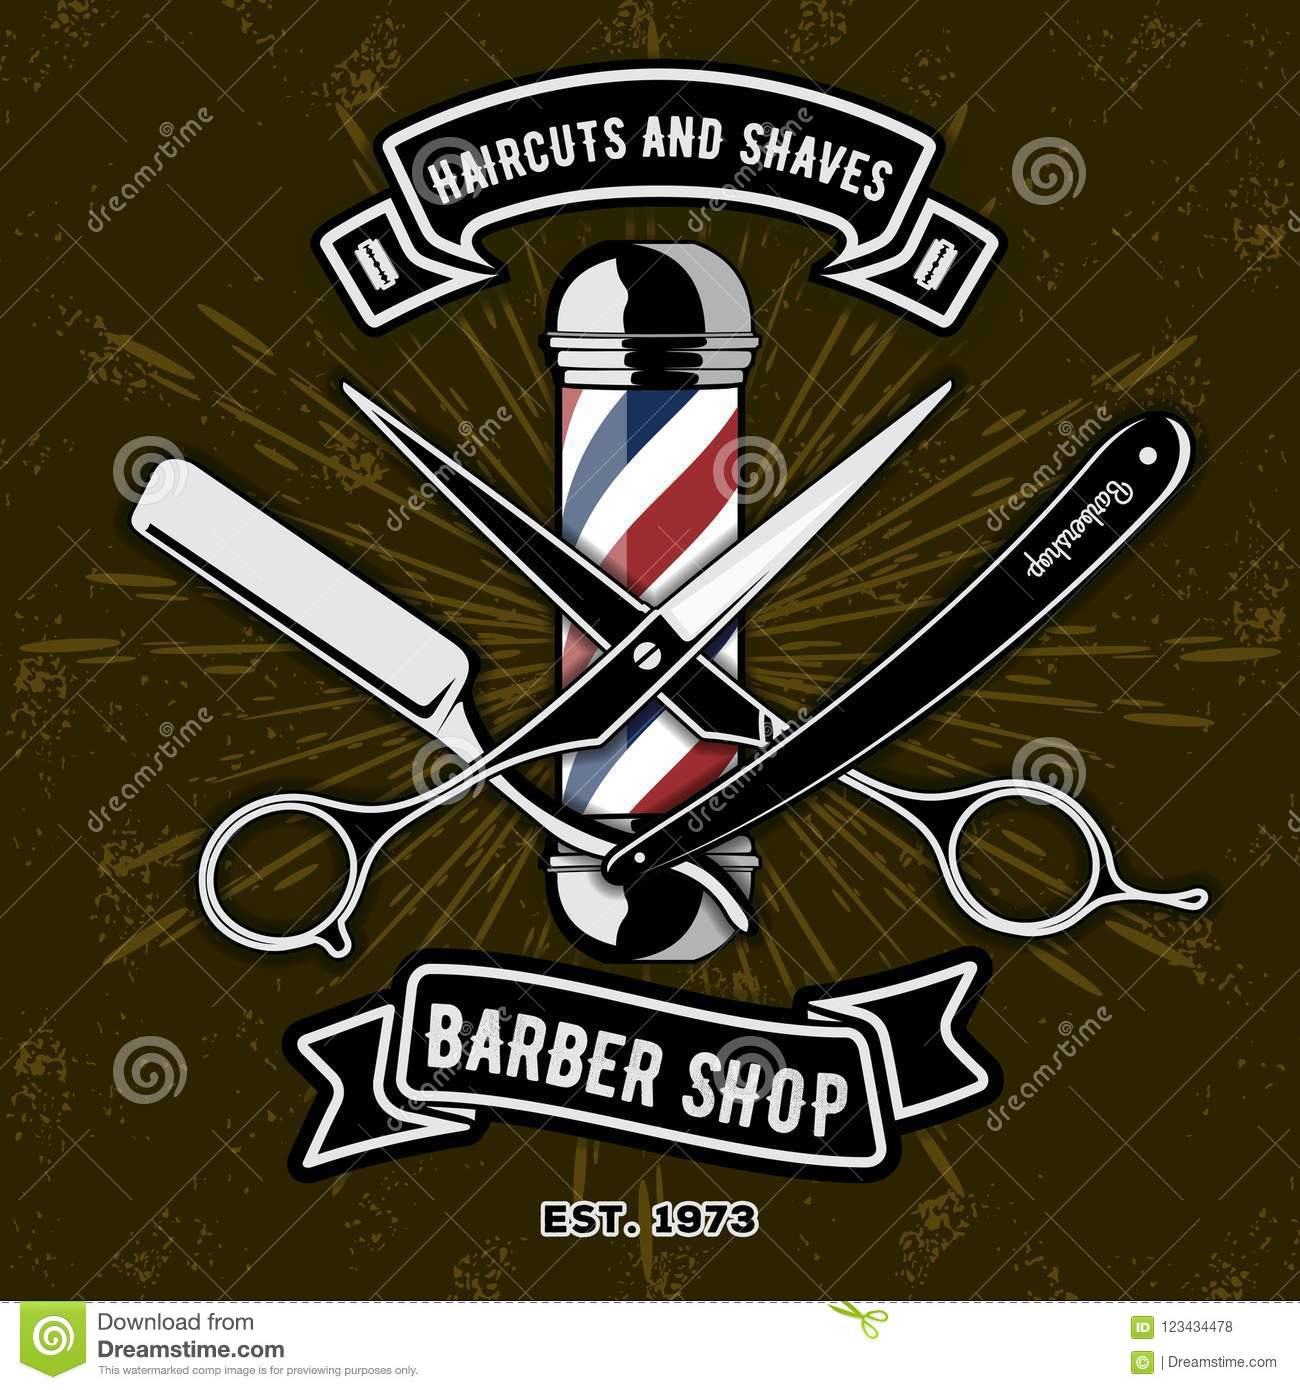 barber shop logo with